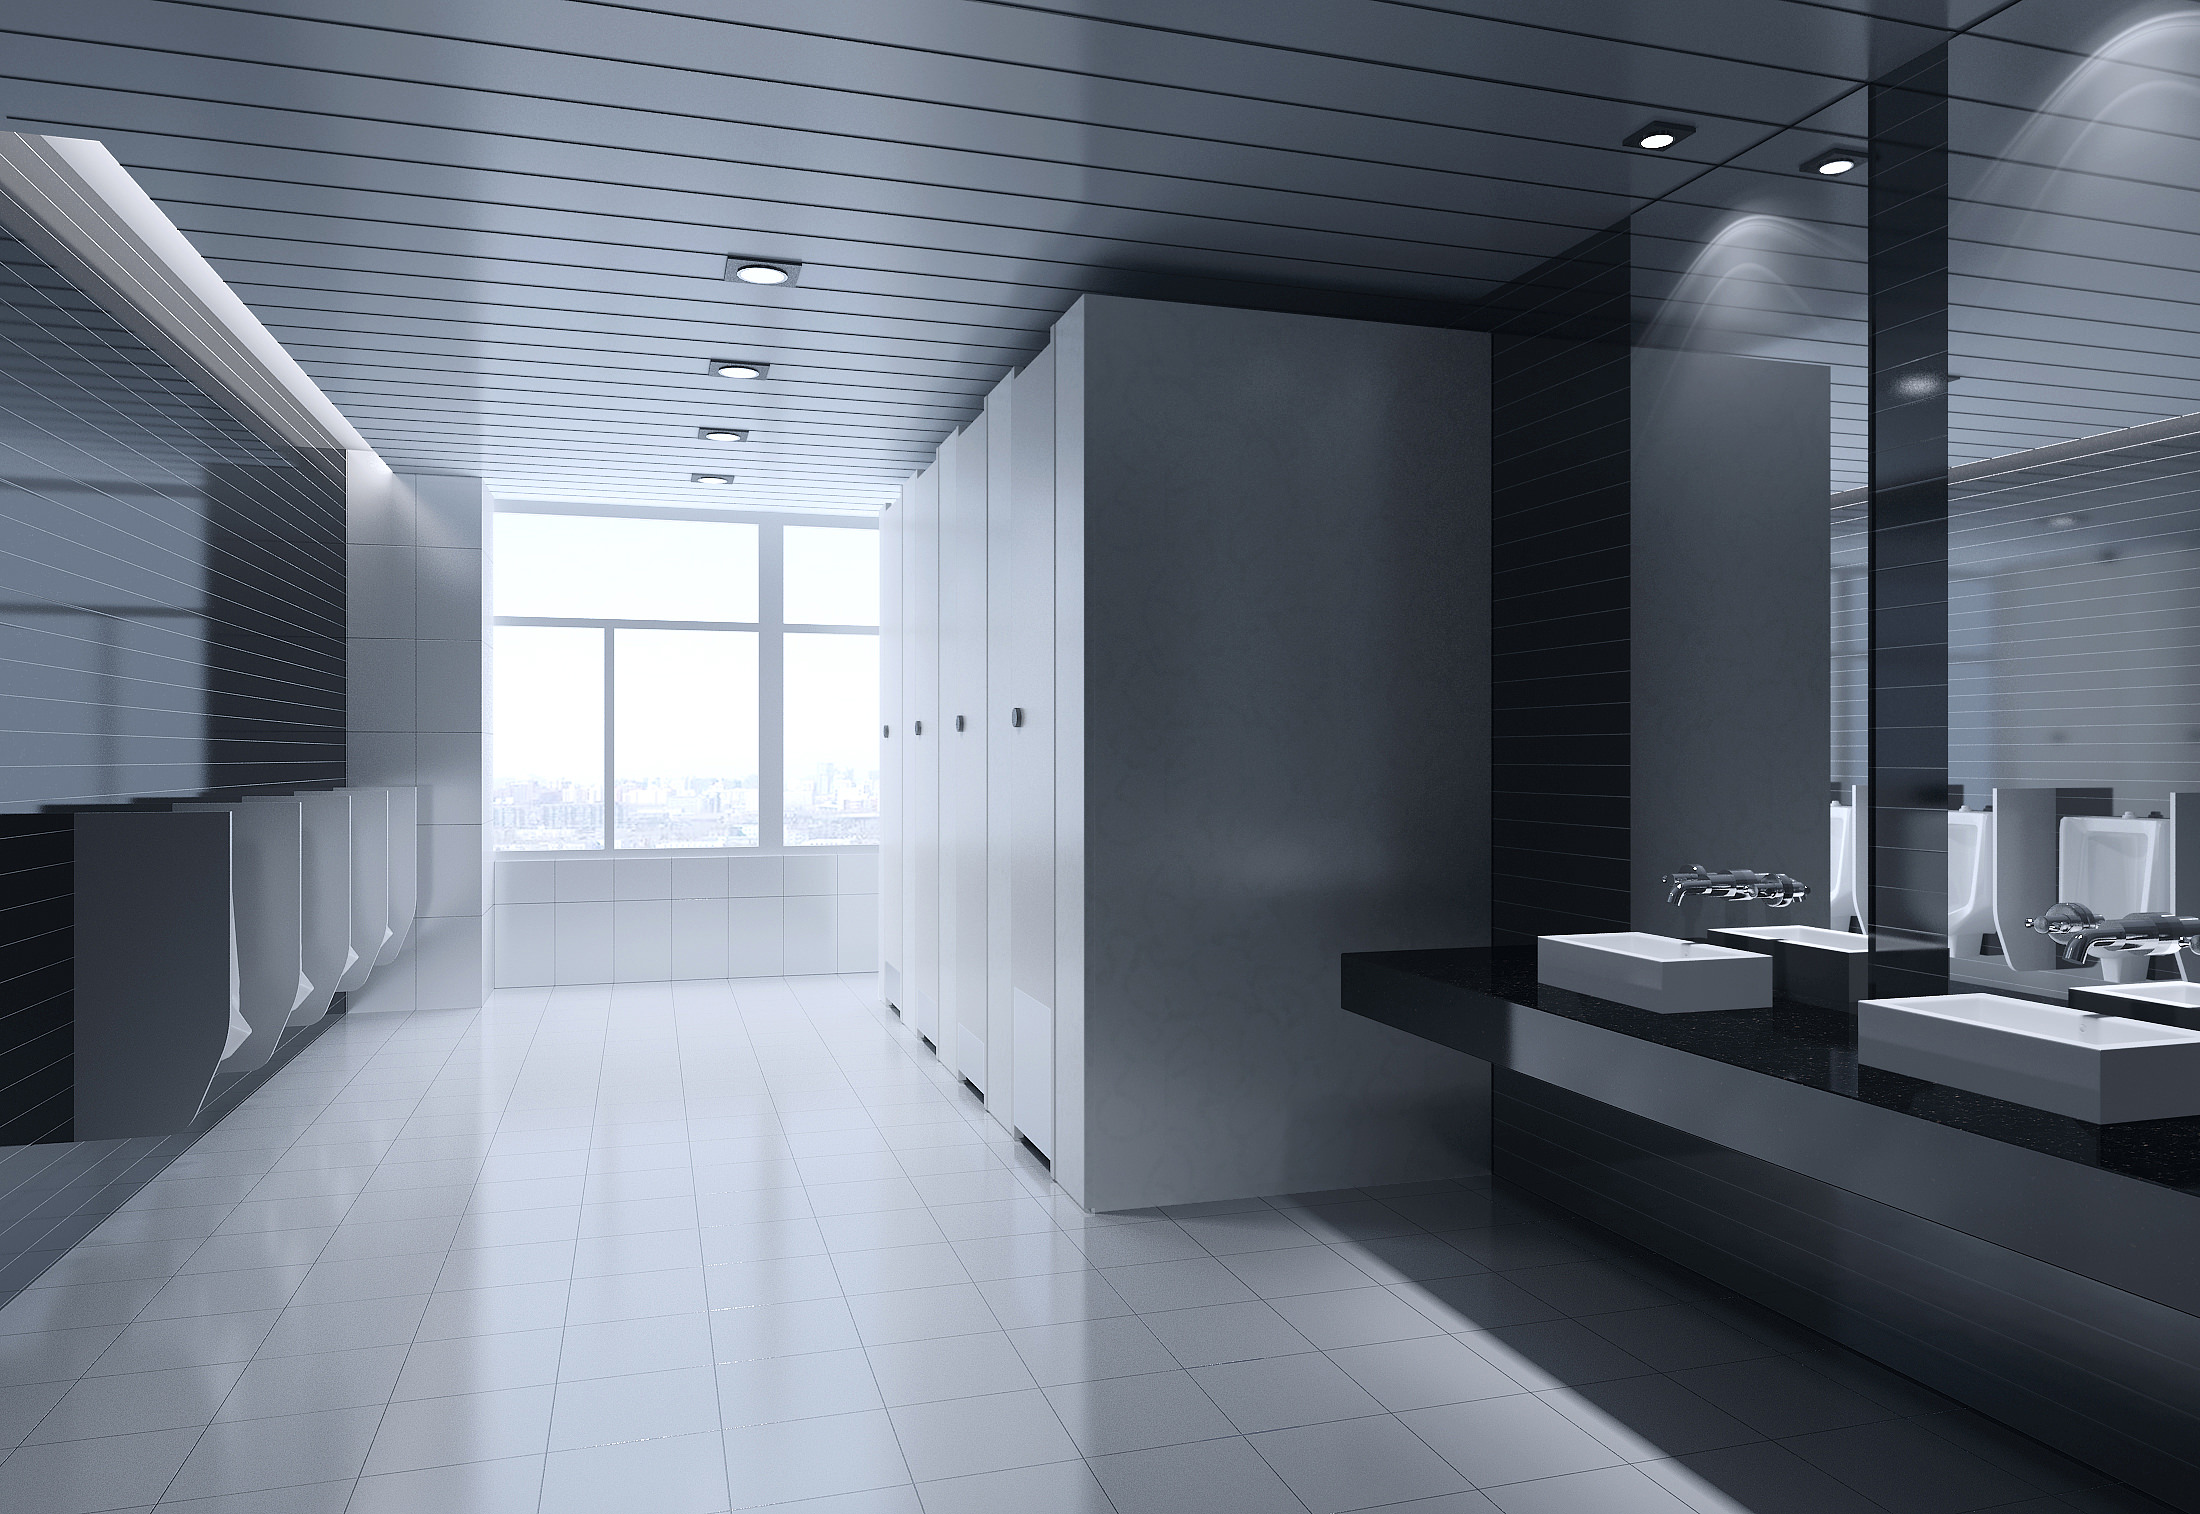 Public Toilet With Black Wall And Ceiling 3d Model Max